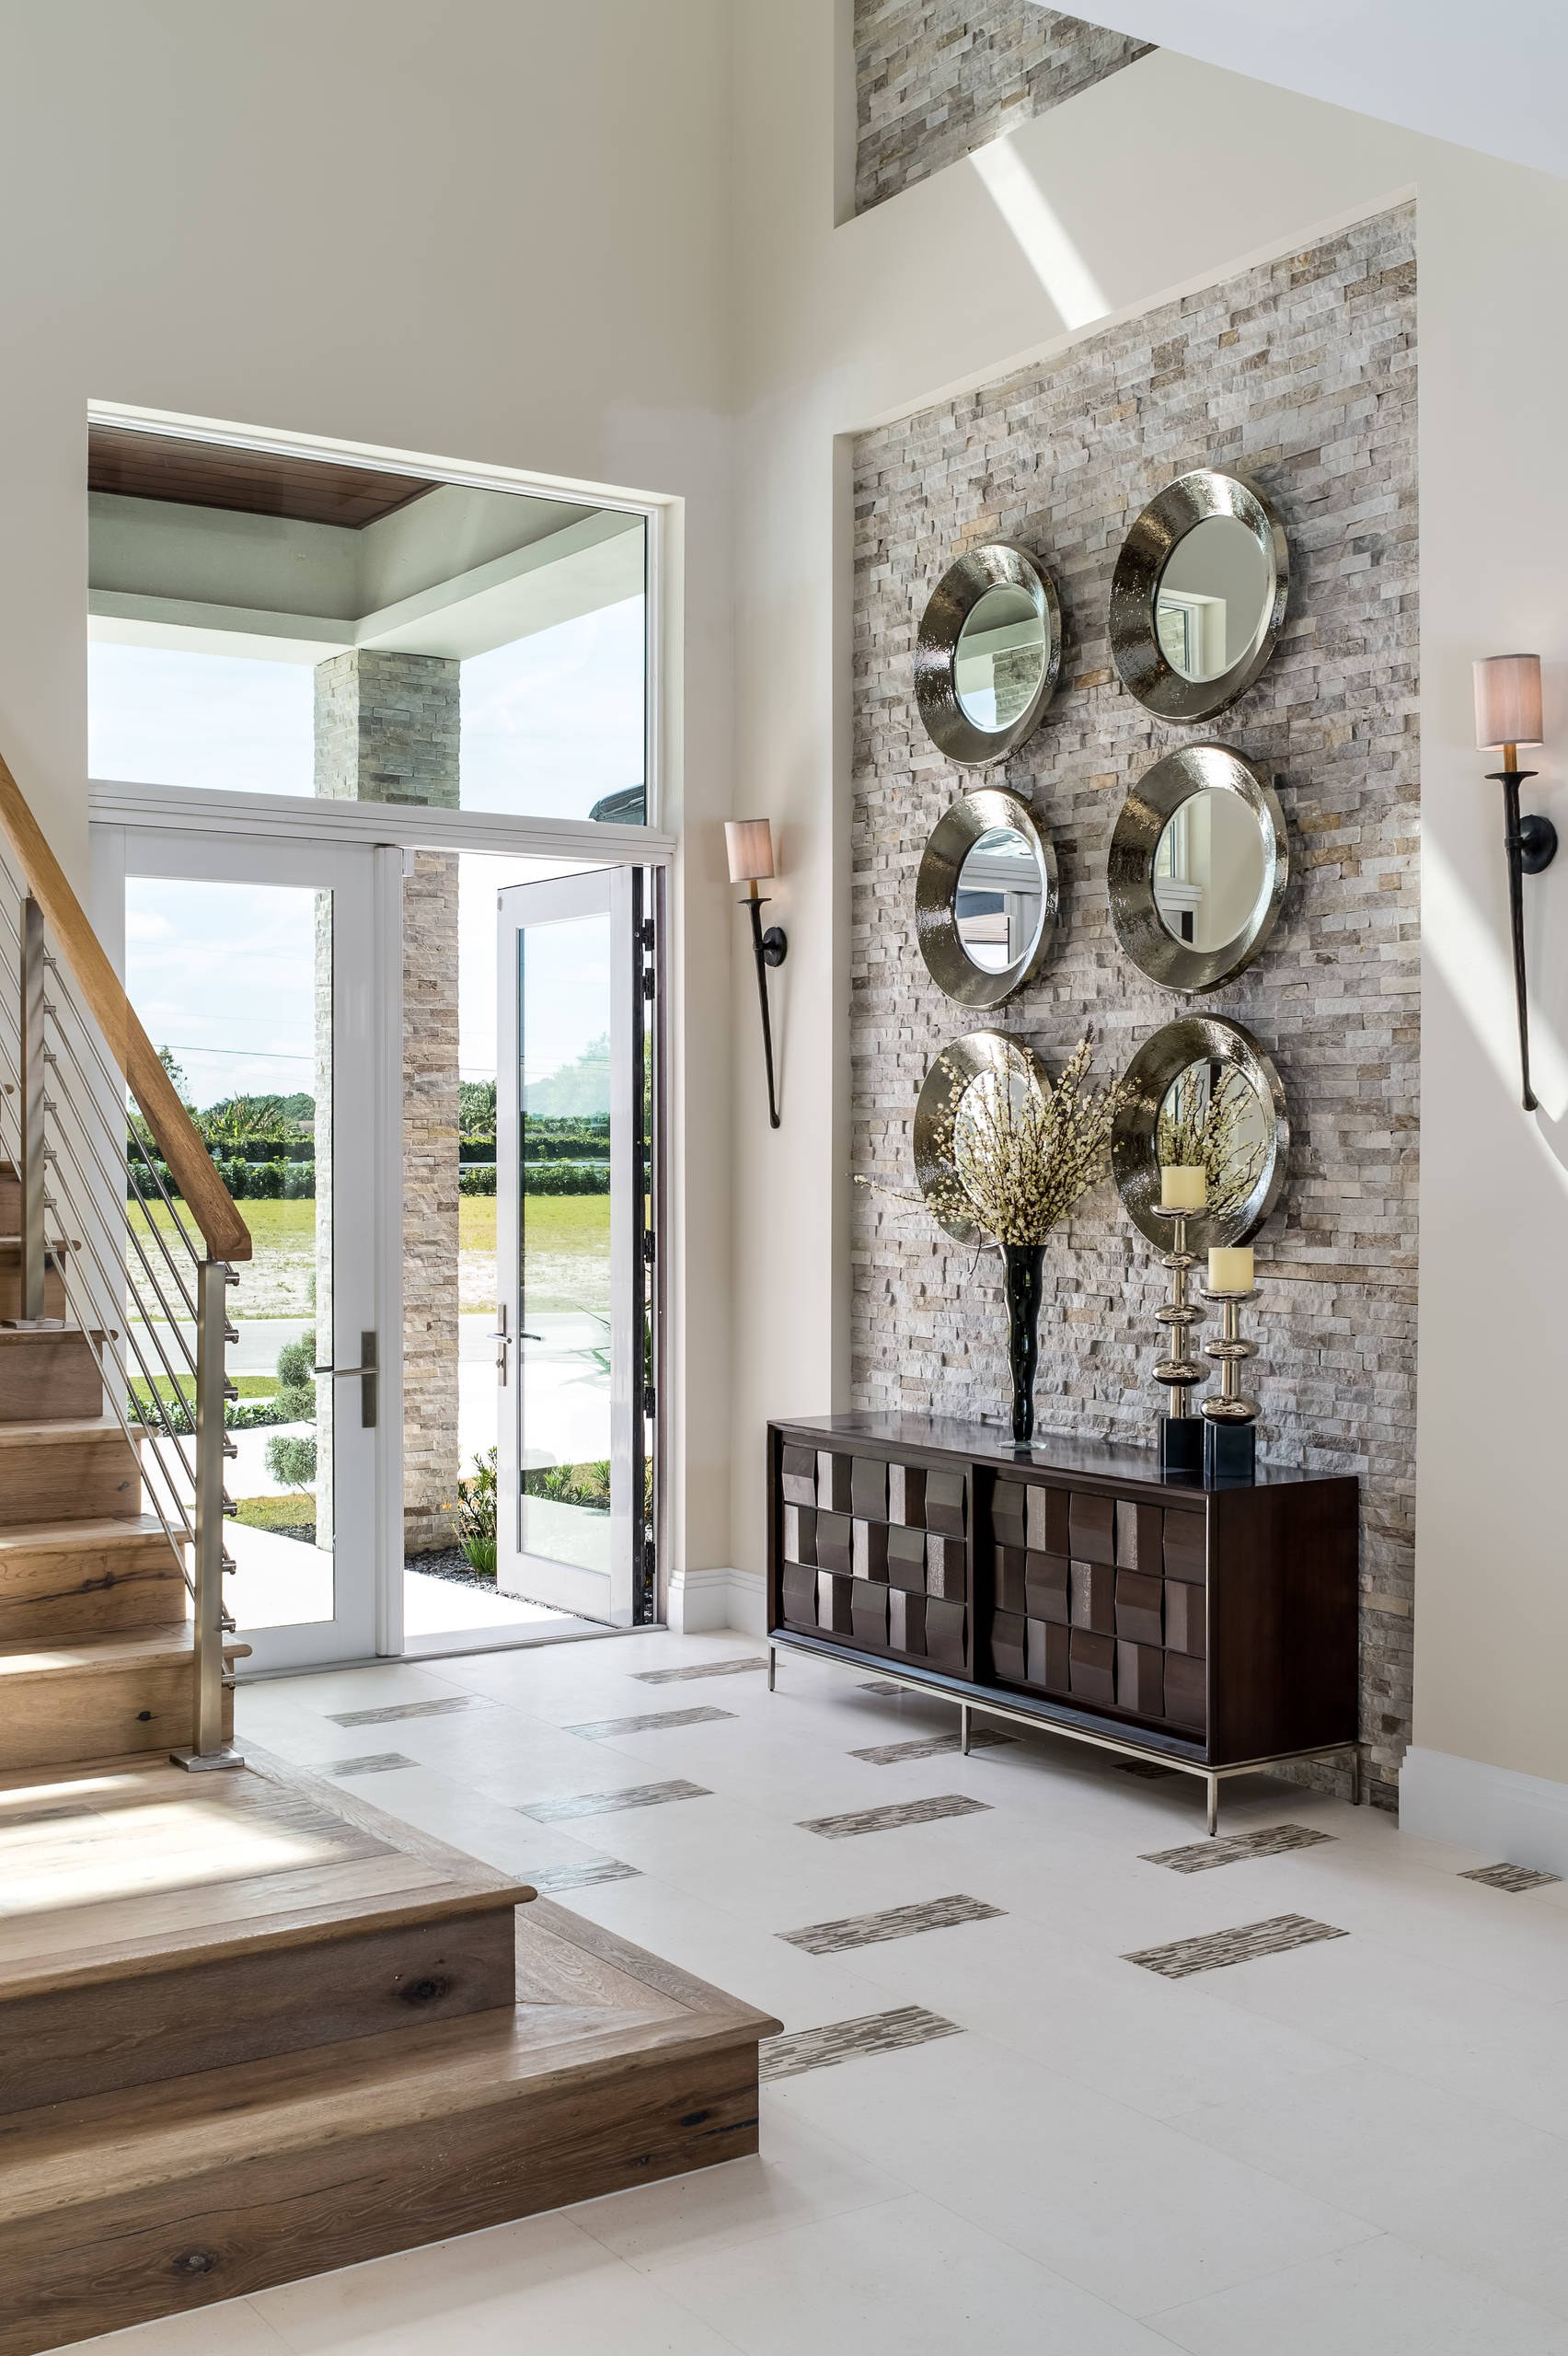 75 Beautiful Entryway With A Glass Front Door Pictures Ideas December 2020 Houzz